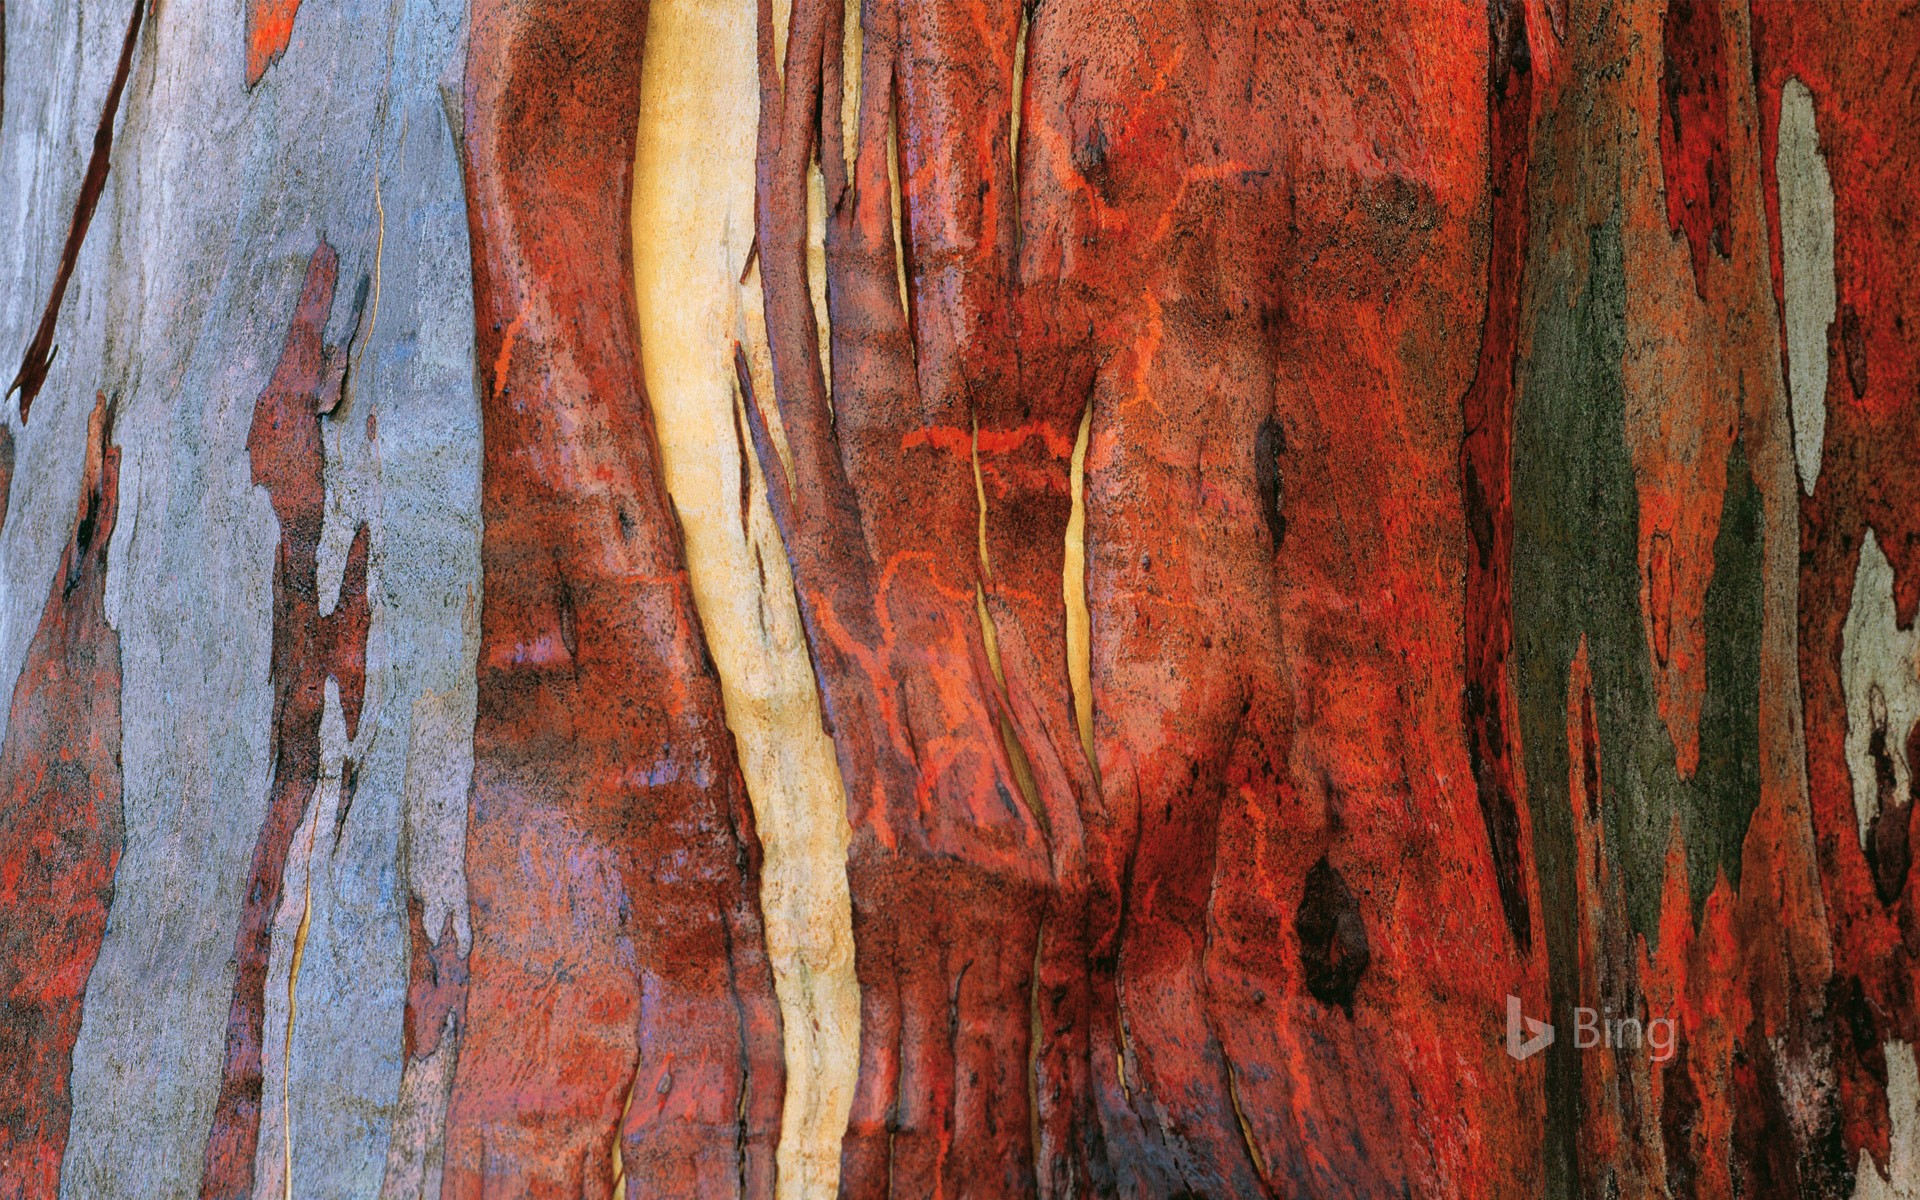 Alpine eucalypt bark in Tasmania, Australia (© Australian Scenics/Getty Images)